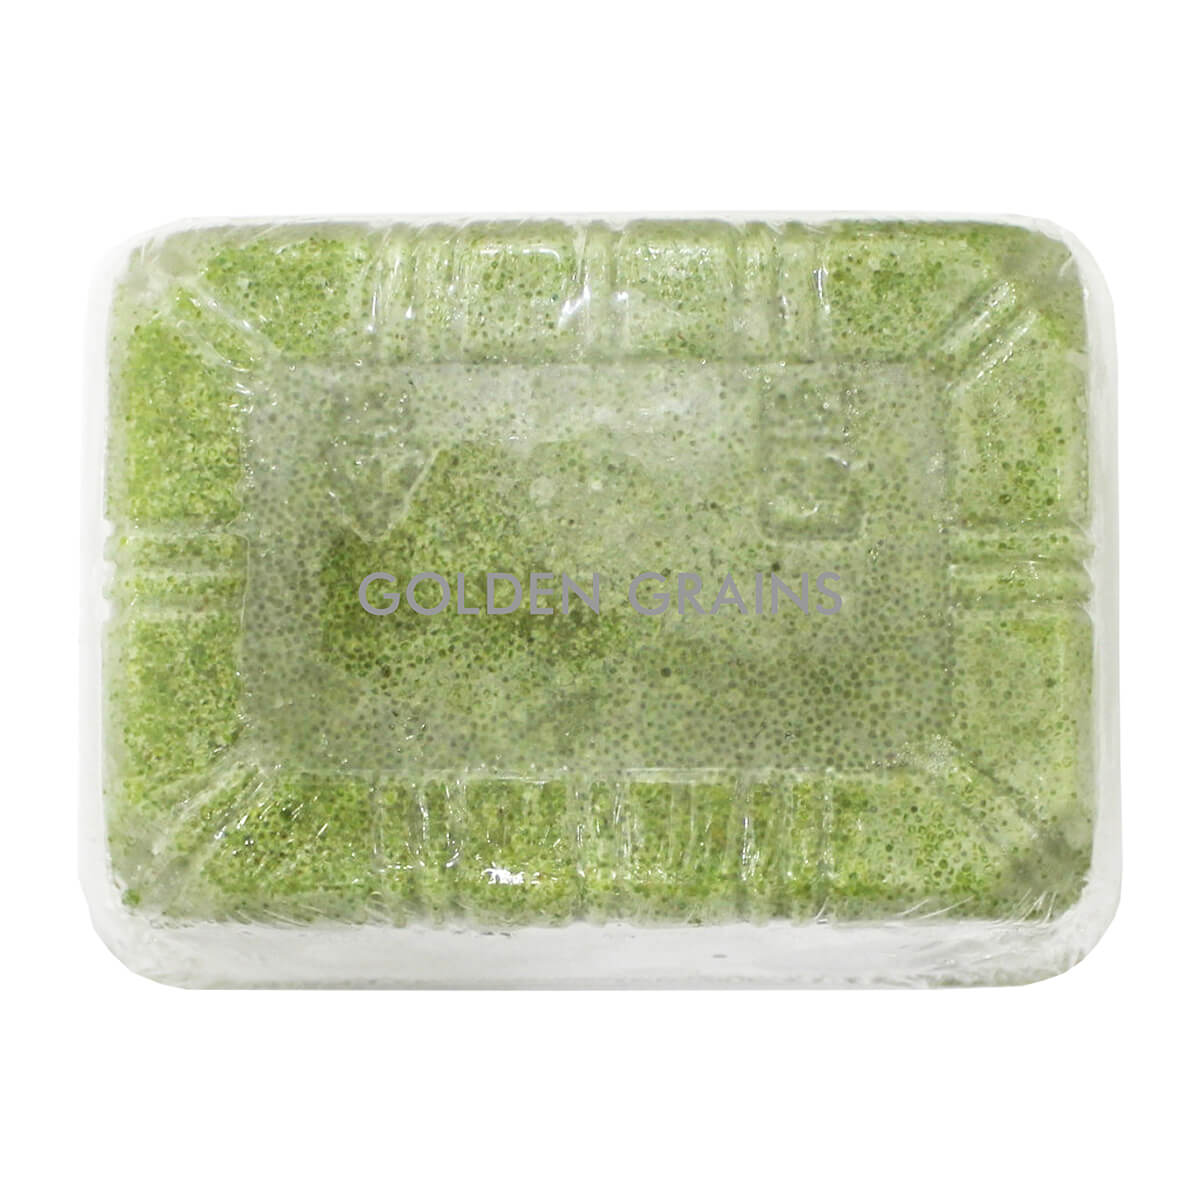 Golden Grains GGFT - Tobiko Green China - Back.jpg